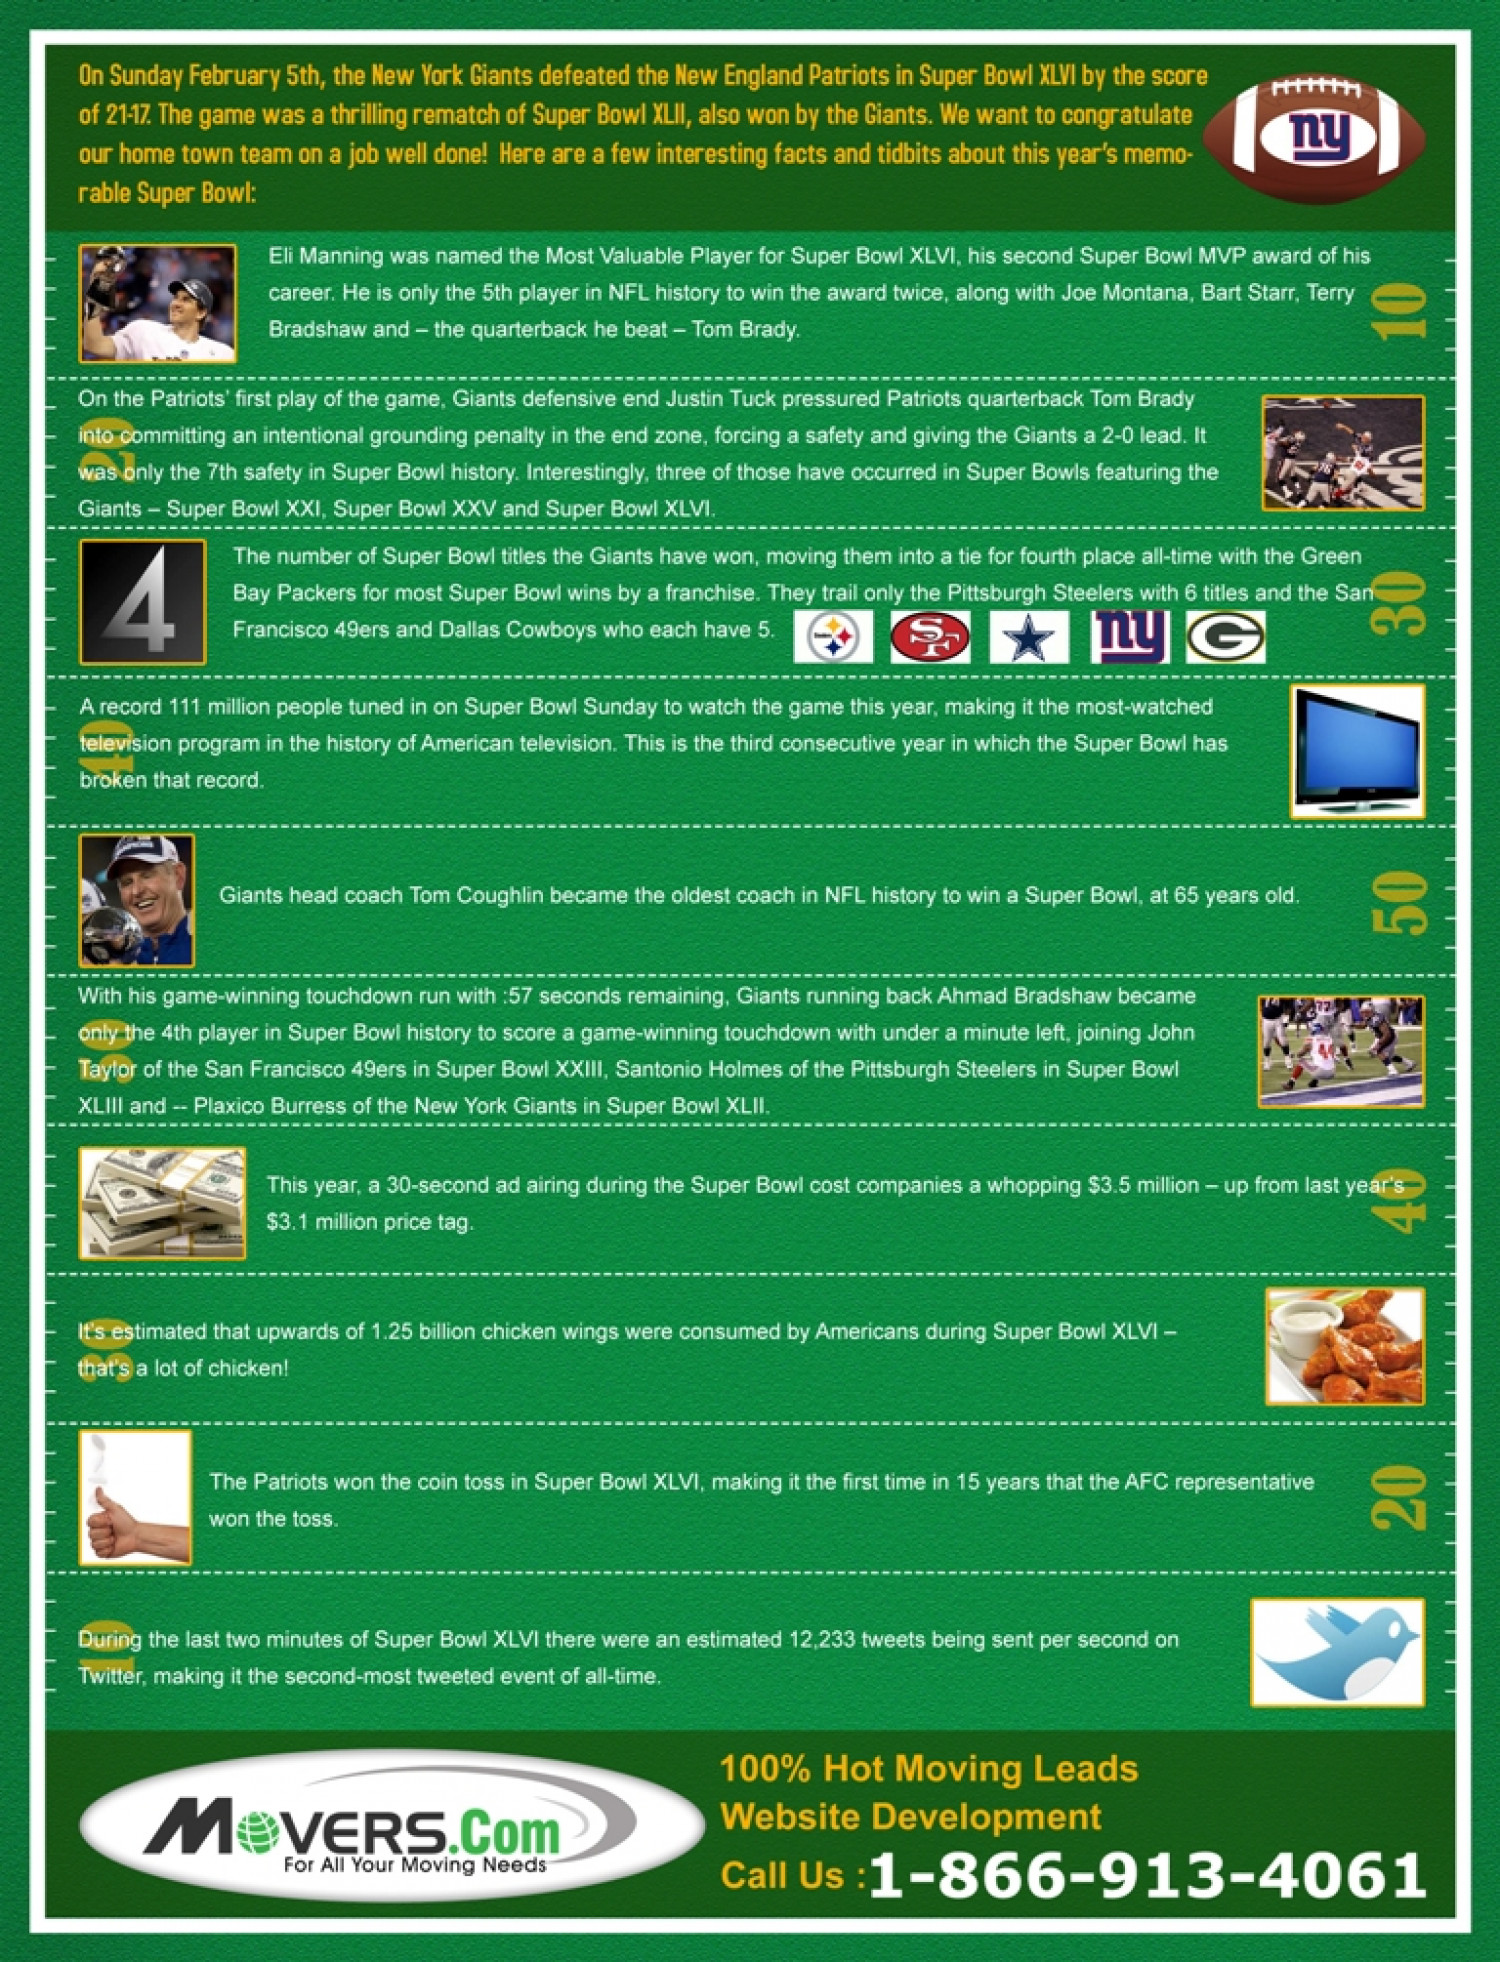 Super Bowl Facts and Tidbits Infographic